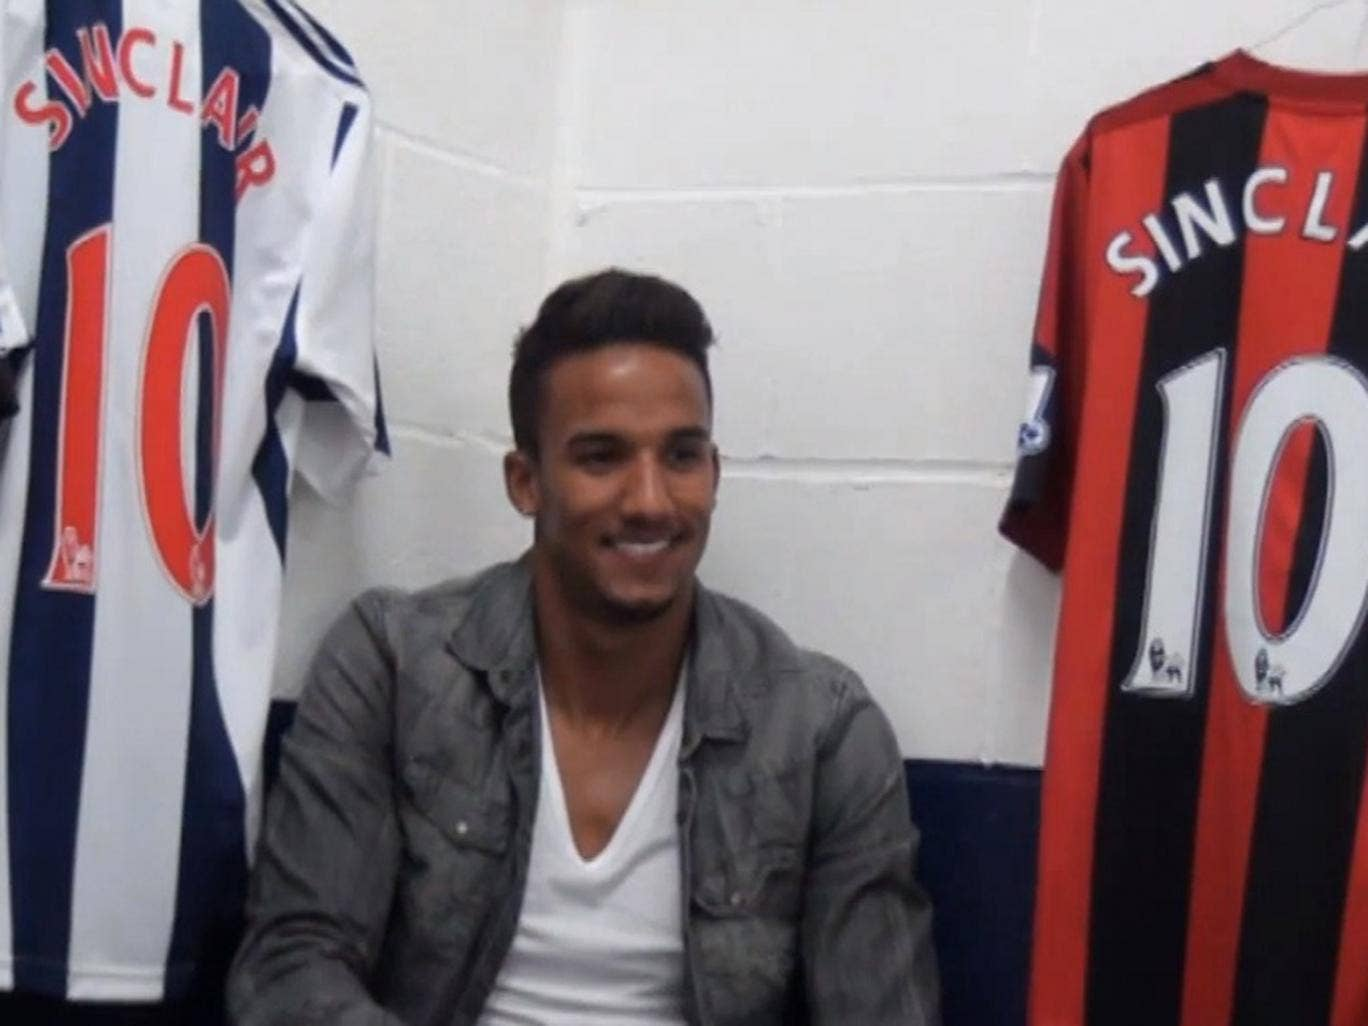 Scott Sinclair pictured with his new shirt